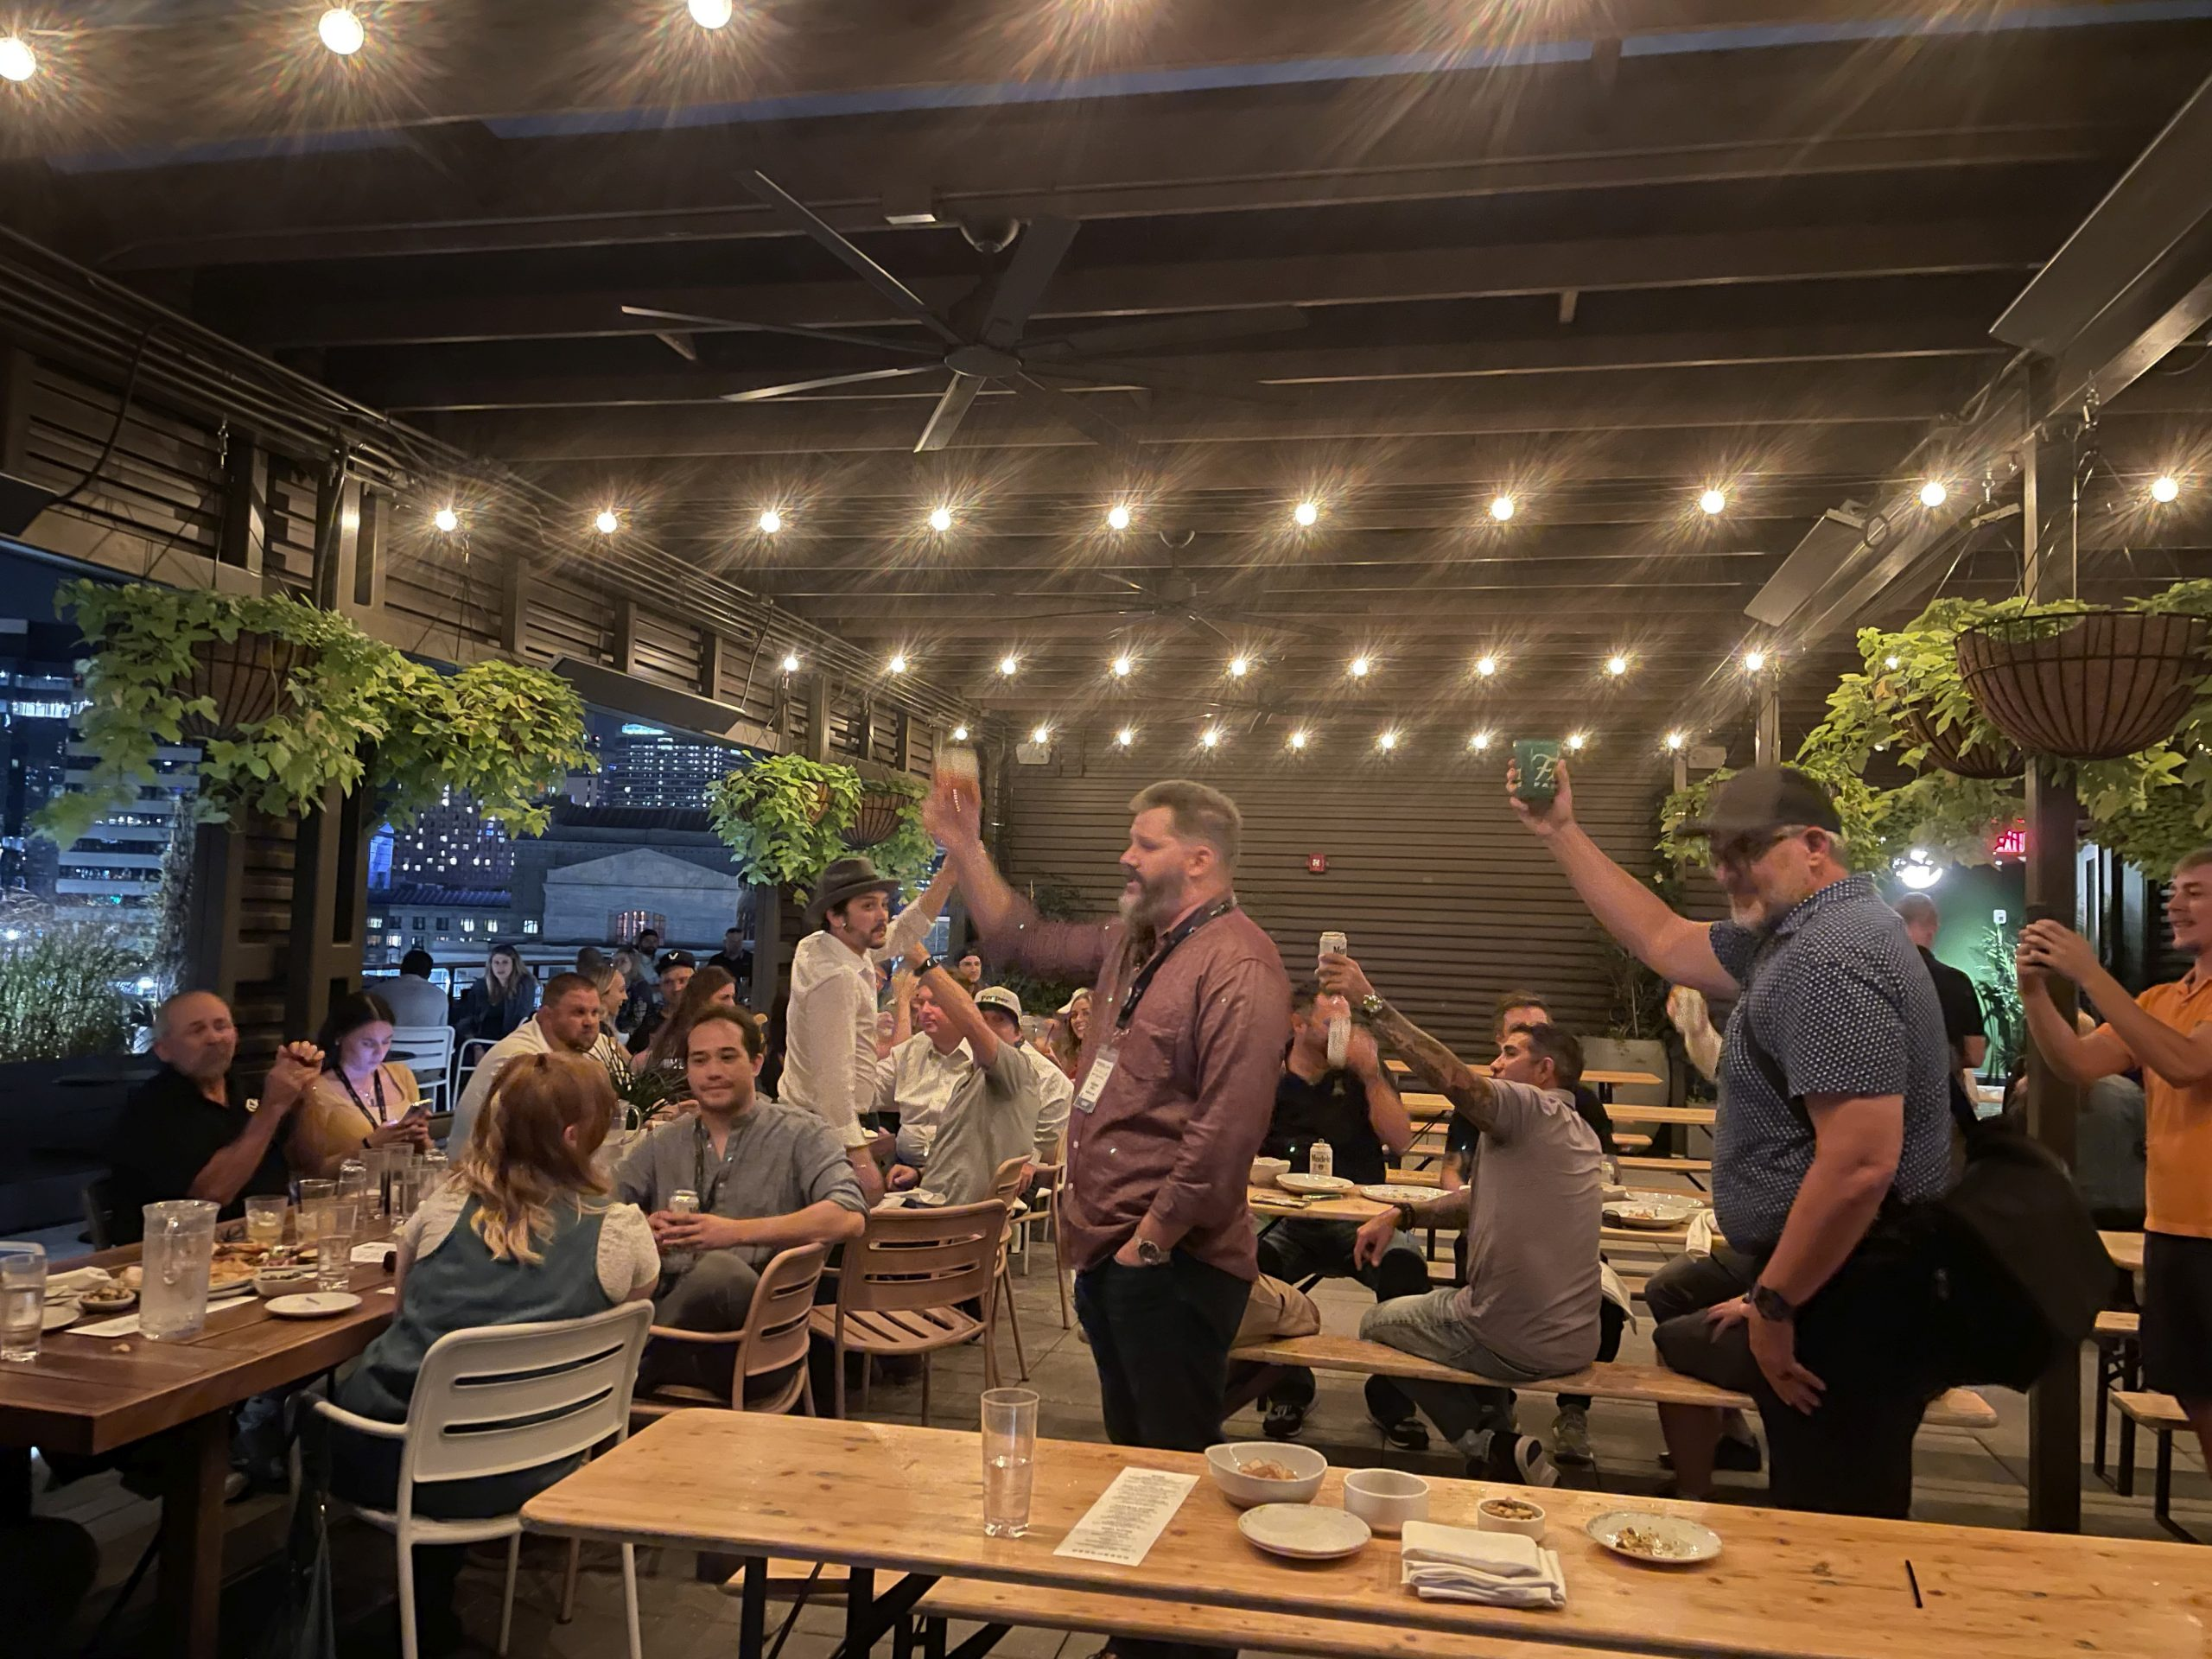 Matthan Black toasts to community and friendship to wrap up the after-meetup hosted by Flora Farms at Percheron Rooftop Bar